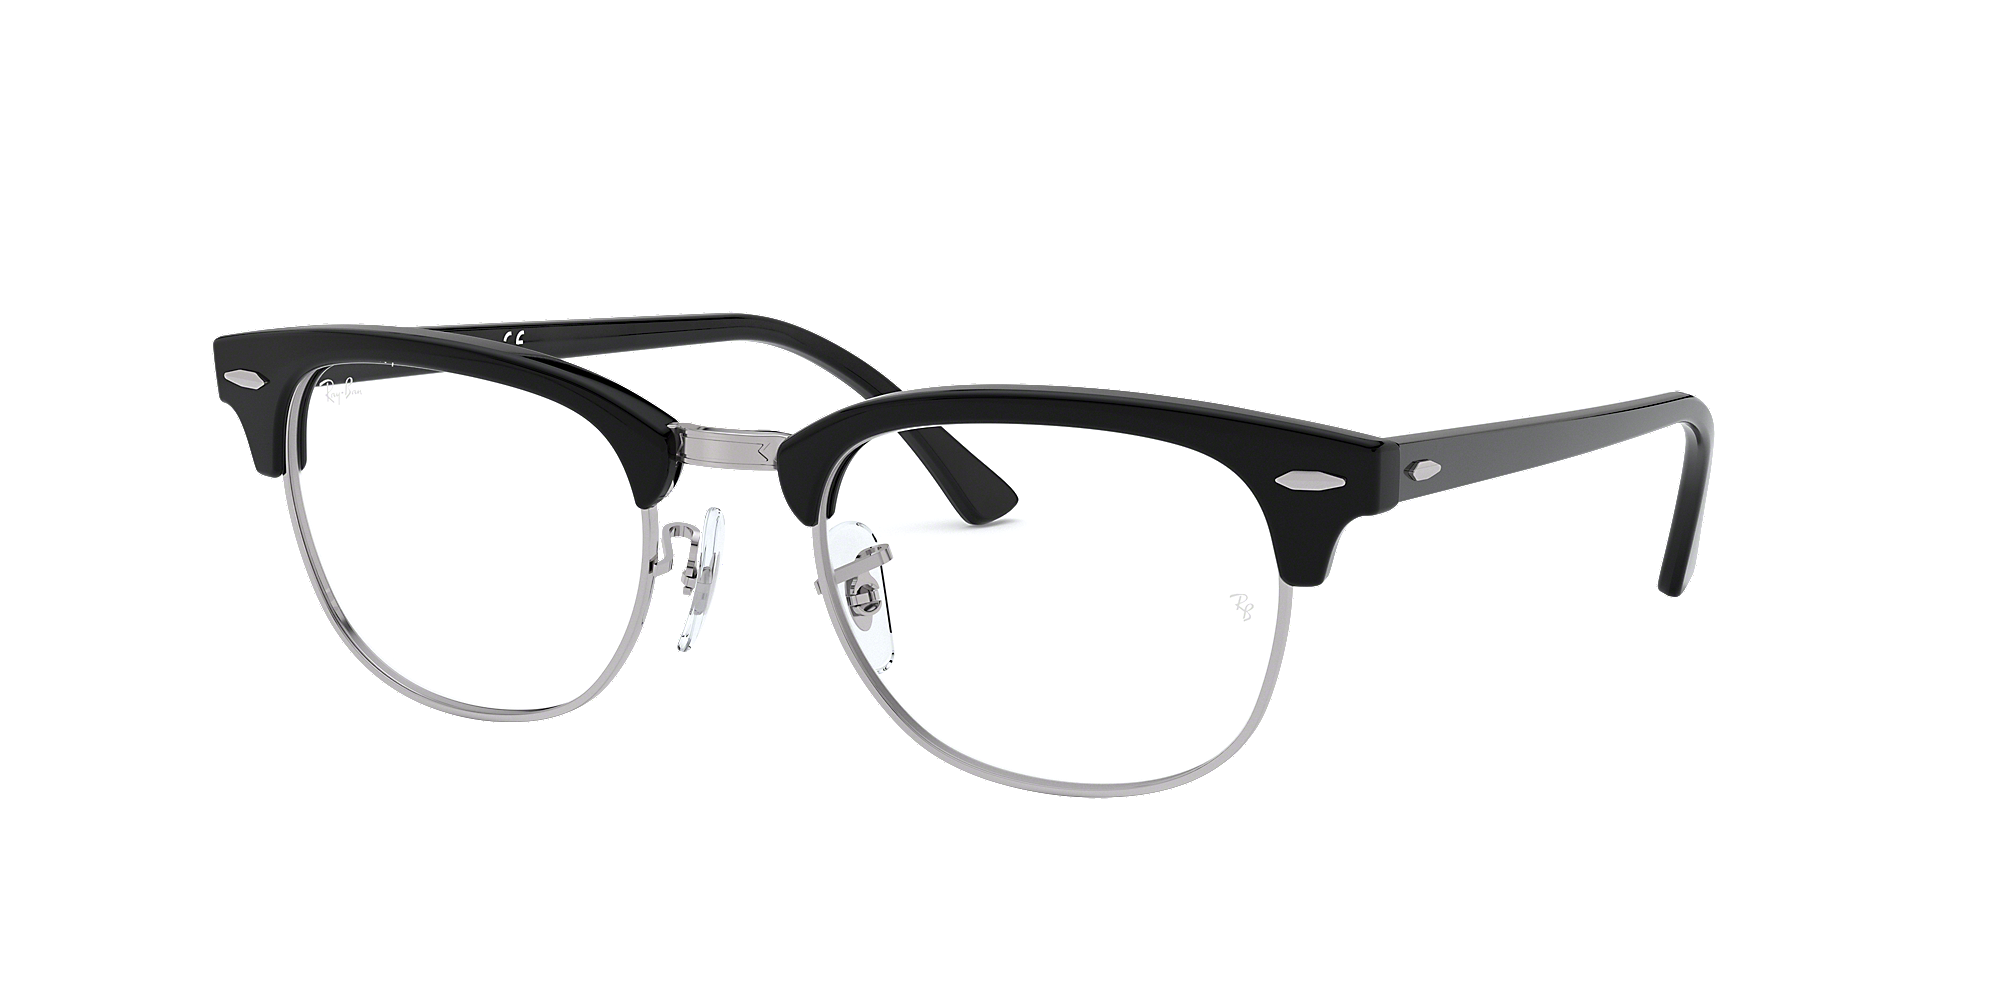 ray ban clubmaster black frame e3rb  RAY-BAN RX5154 CLUBMASTER FRAMES